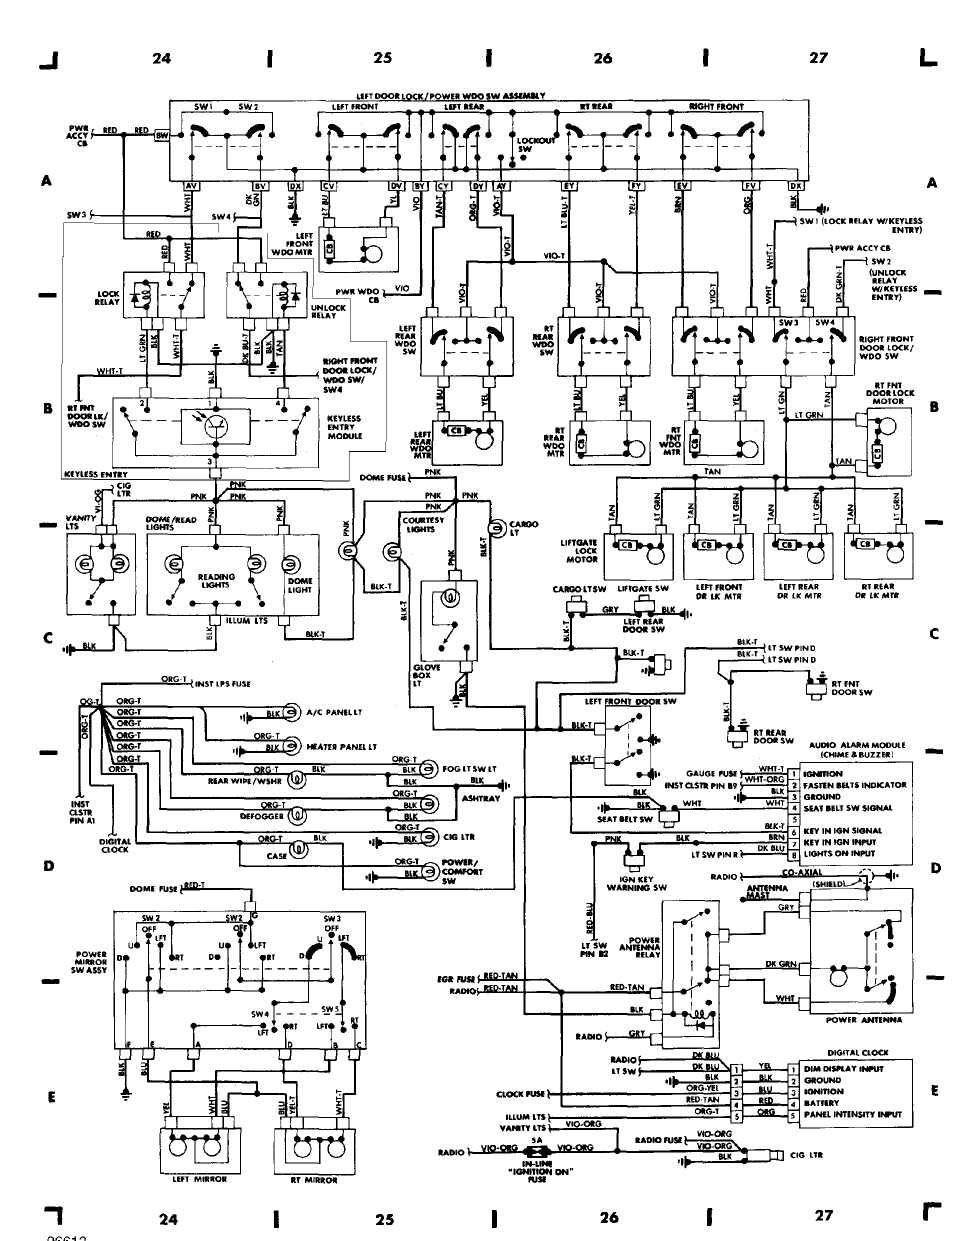 wiring_diagrams_html_61f5e0ad wiring diagrams 1984 1991 jeep cherokee (xj) jeep 2001 jeep grand cherokee fuse box layout at bayanpartner.co